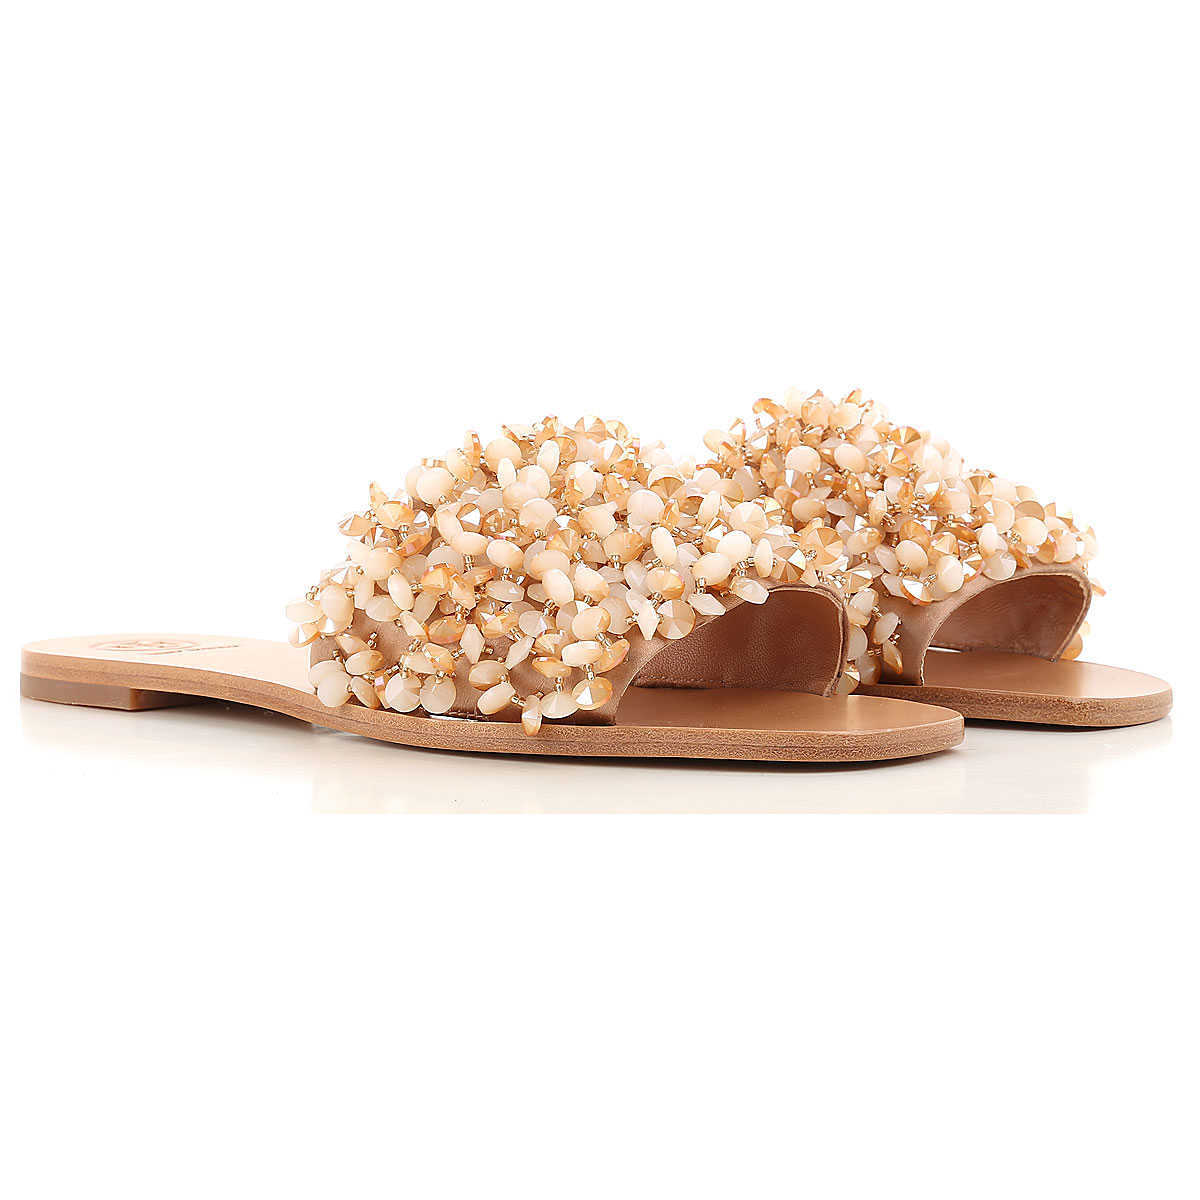 Tory Burch Sandals for Women On Sale in Outlet Nude UK - GOOFASH